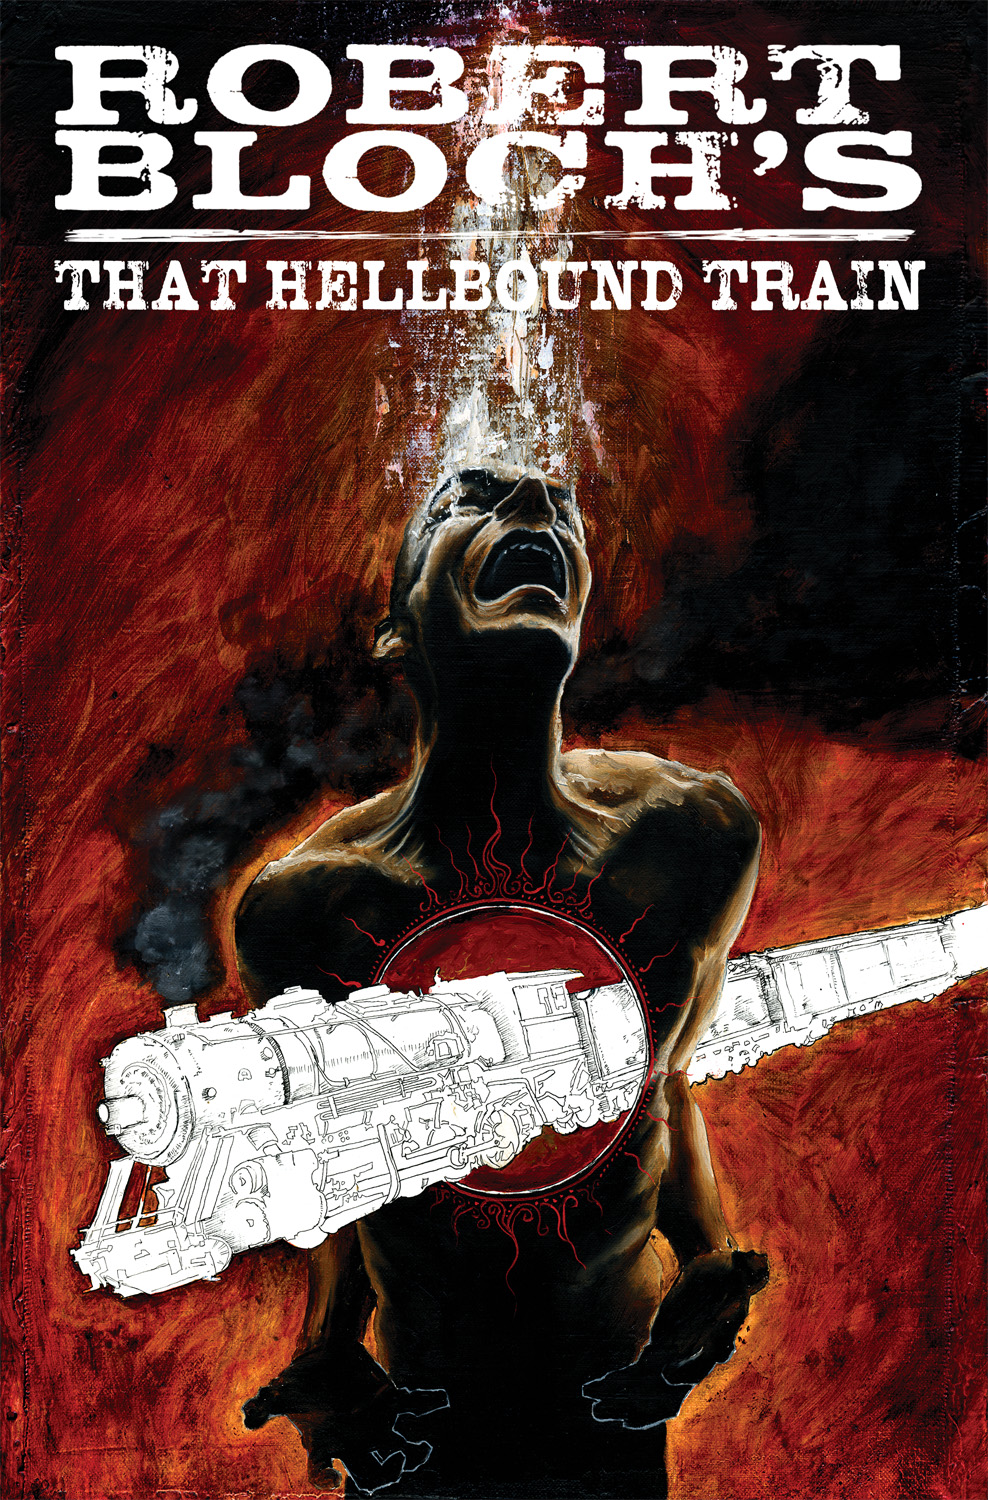 That Hellbound Train